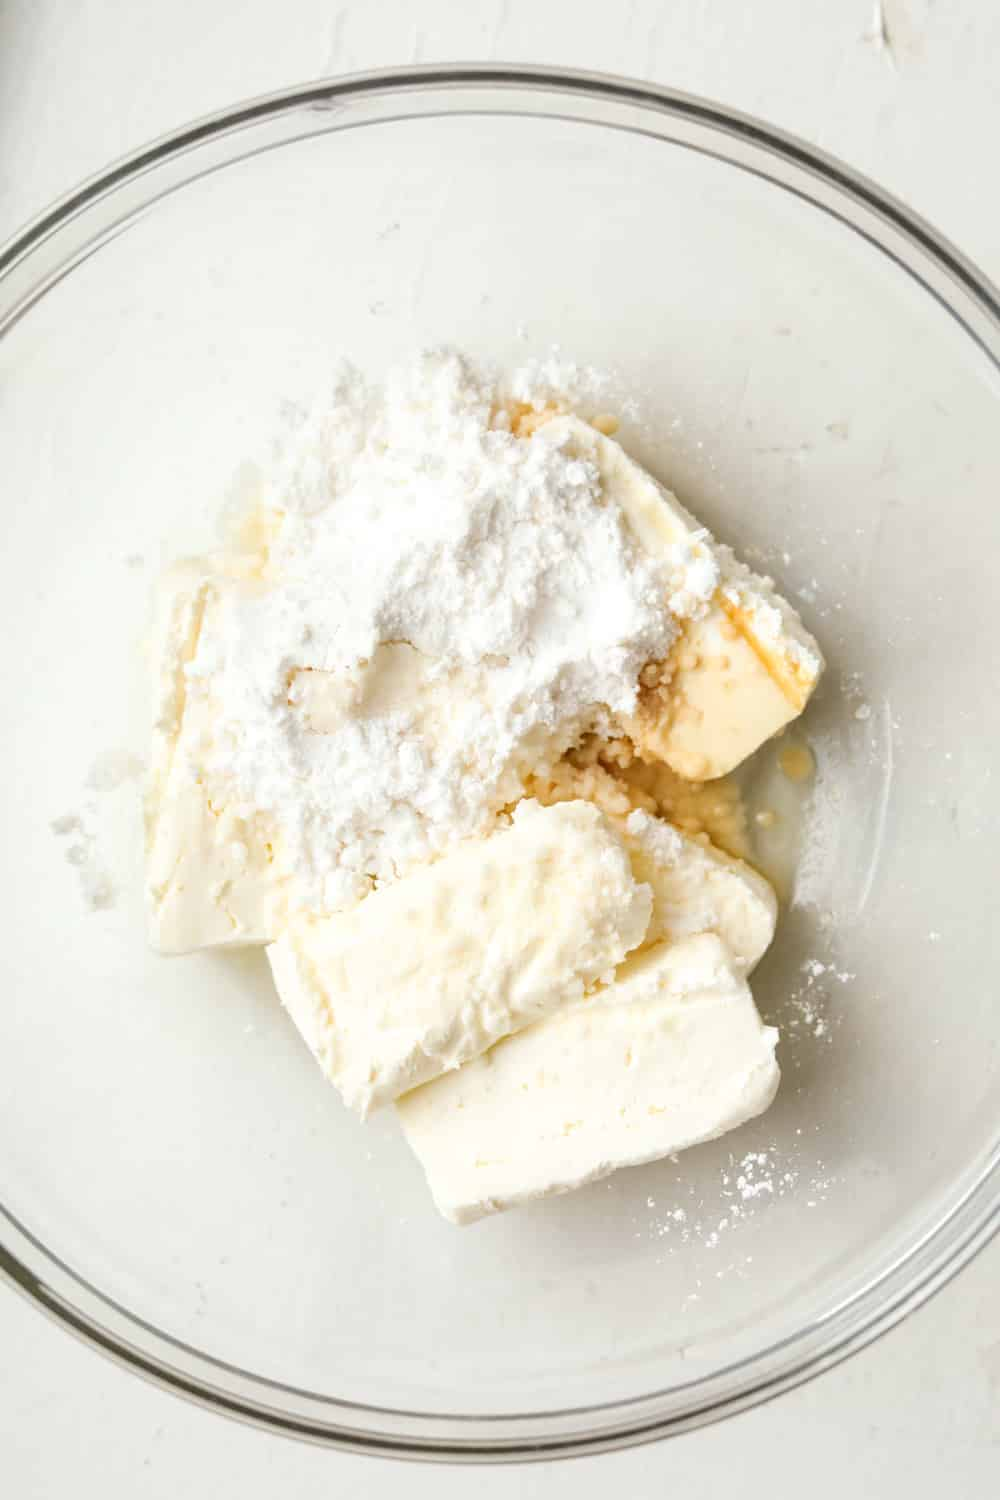 Cream cheese, sour cream, and other ingredients to make a filling for cheesecake in a glass bowl.